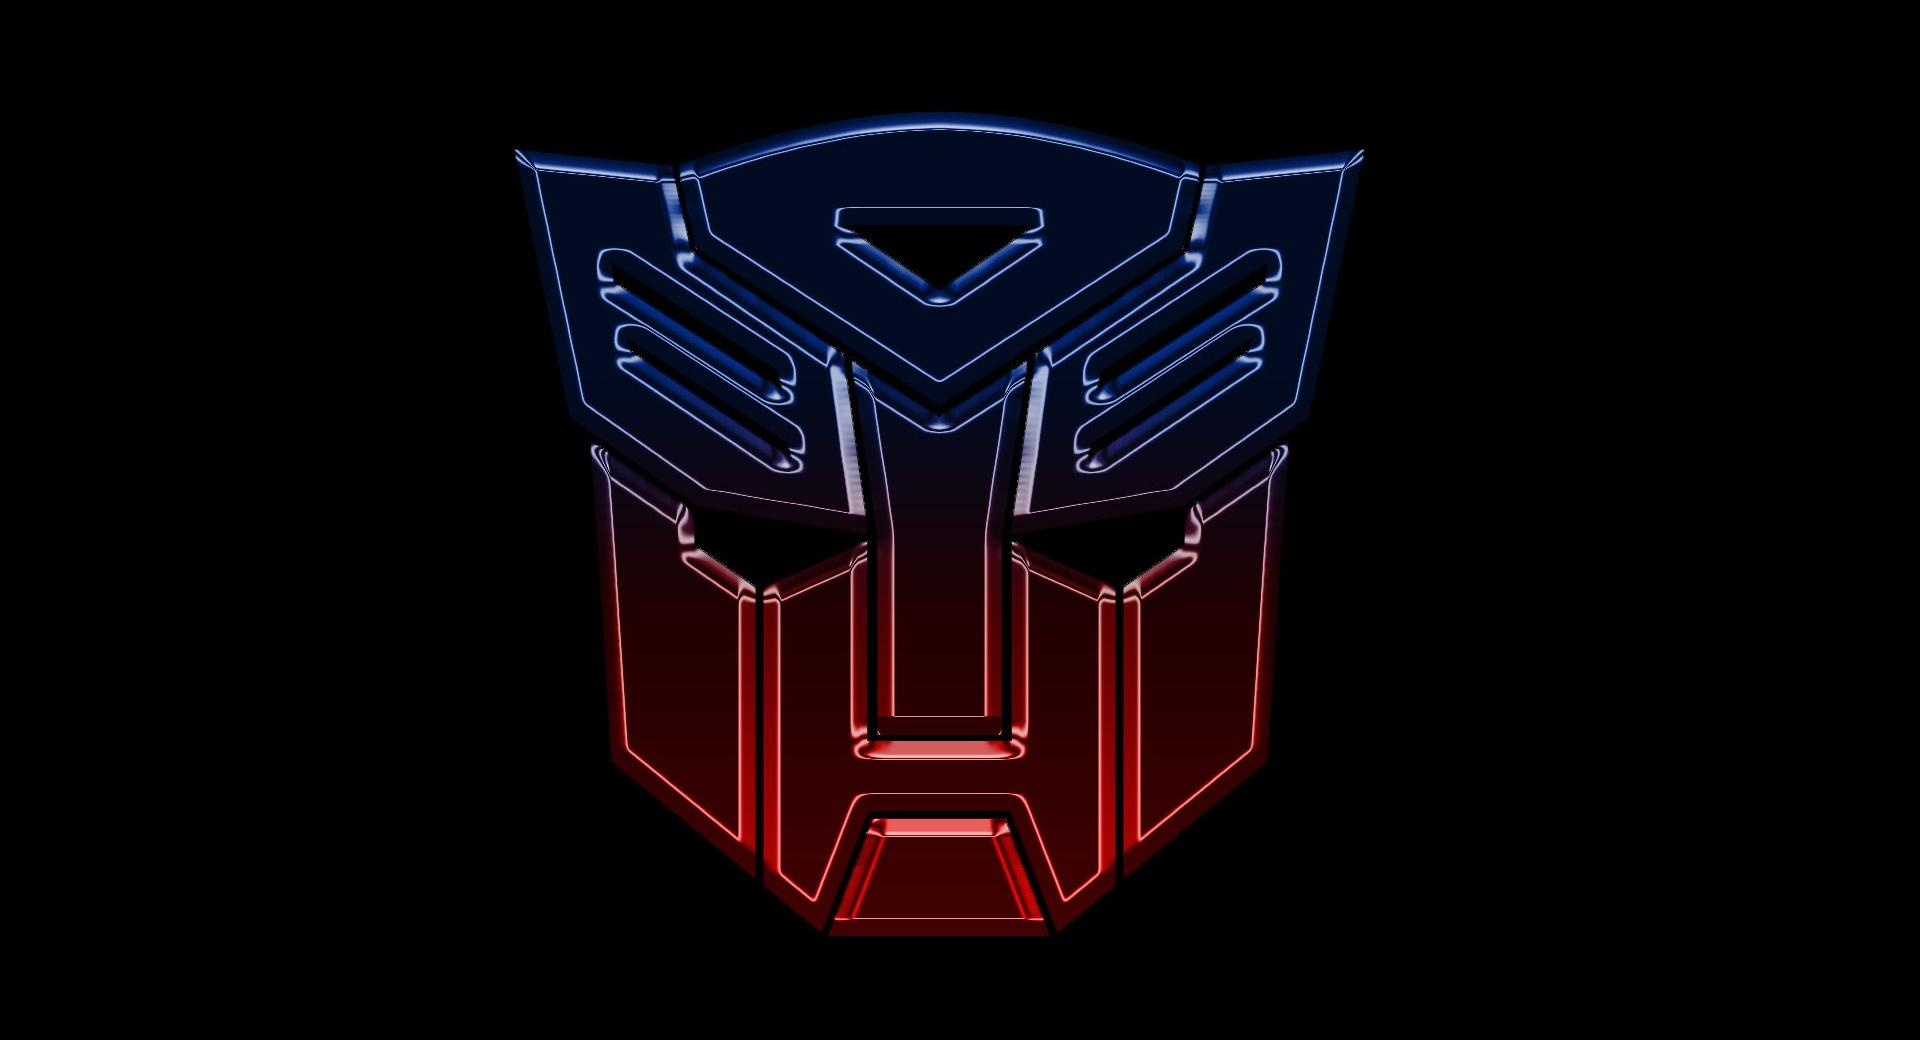 Transformers Autobots Logo Widescreen at 640 x 1136 iPhone 5 size wallpapers HD quality